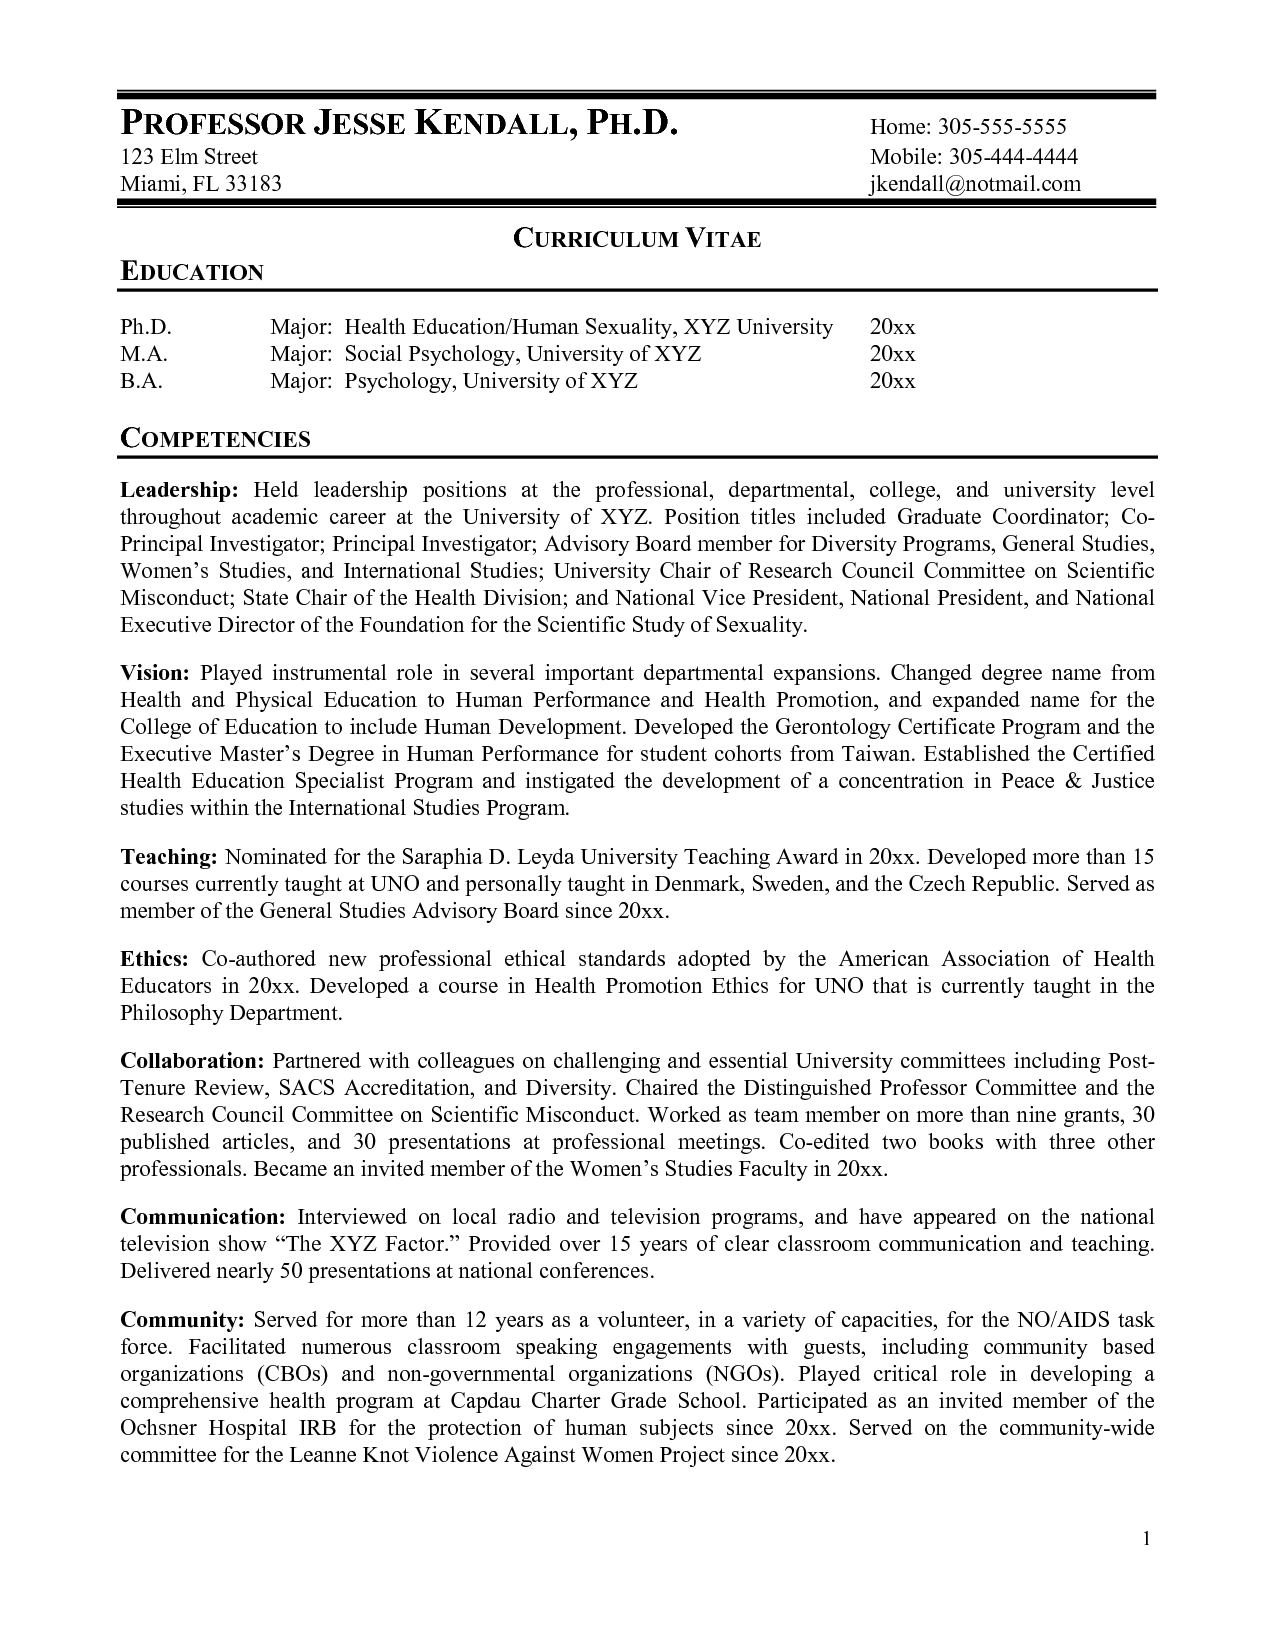 curriculum vitae and resume